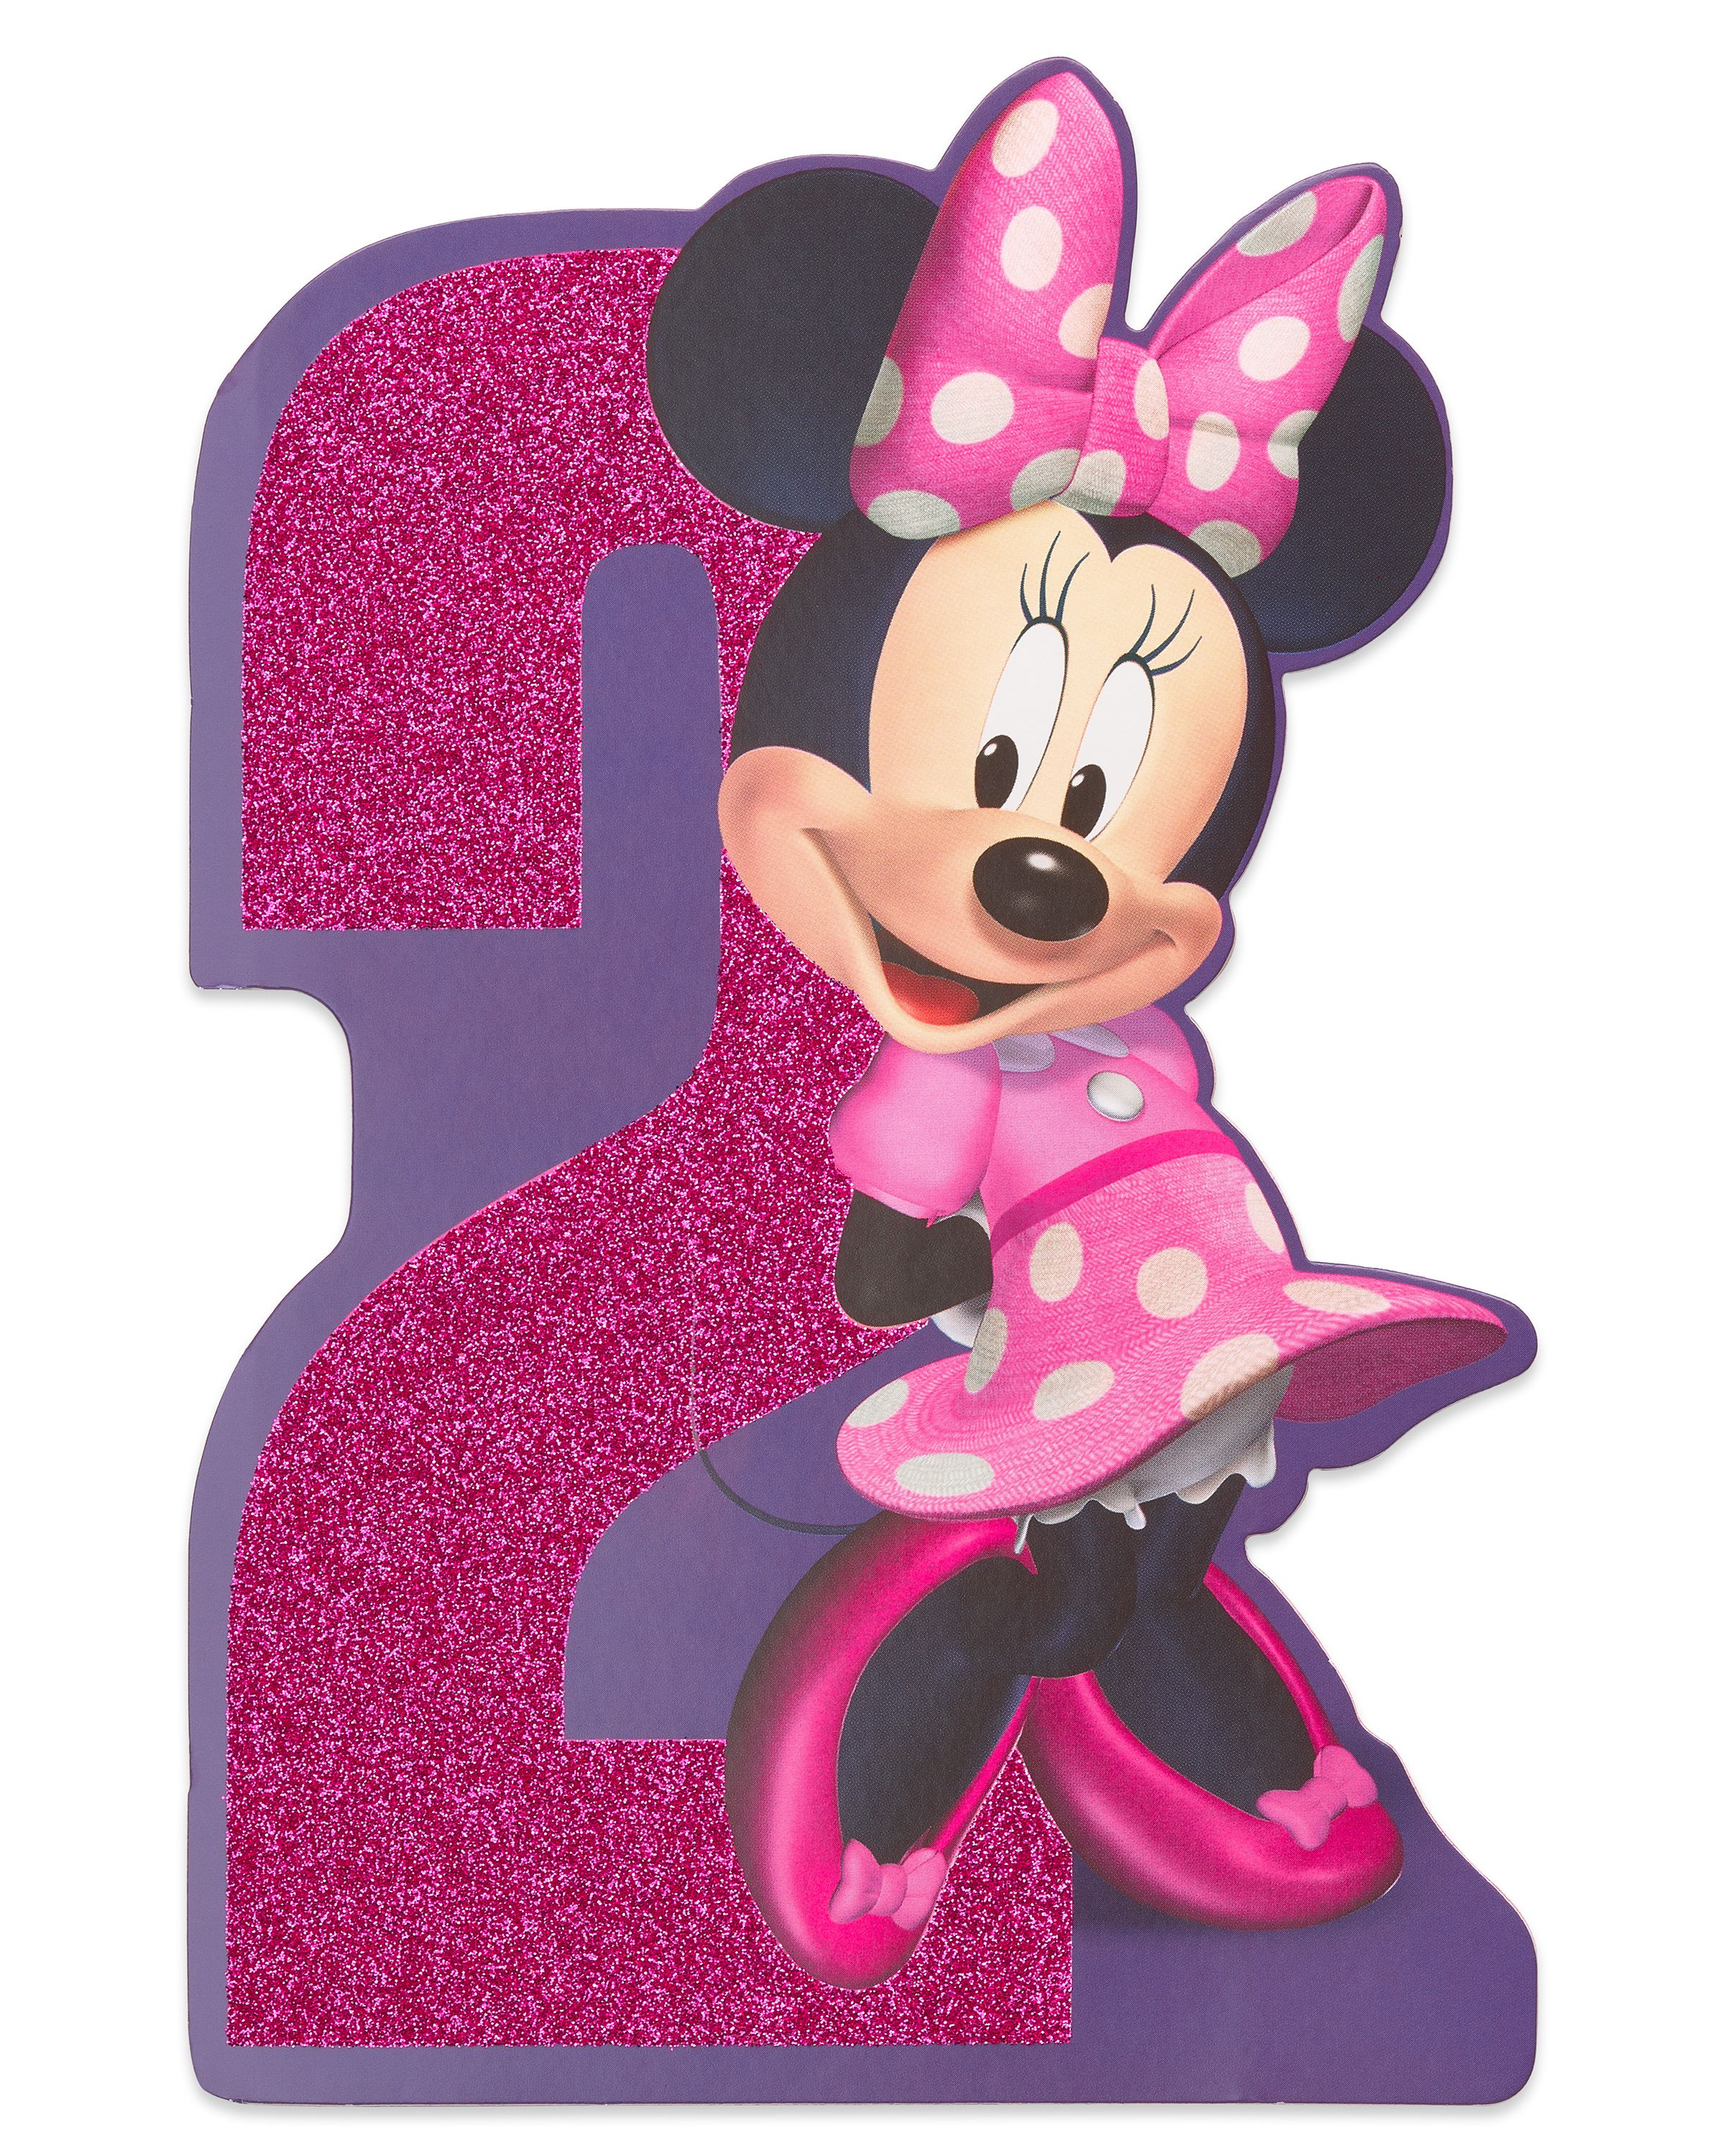 american greetings minnie mouse 2nd birthday card for girl with glitter walmart com